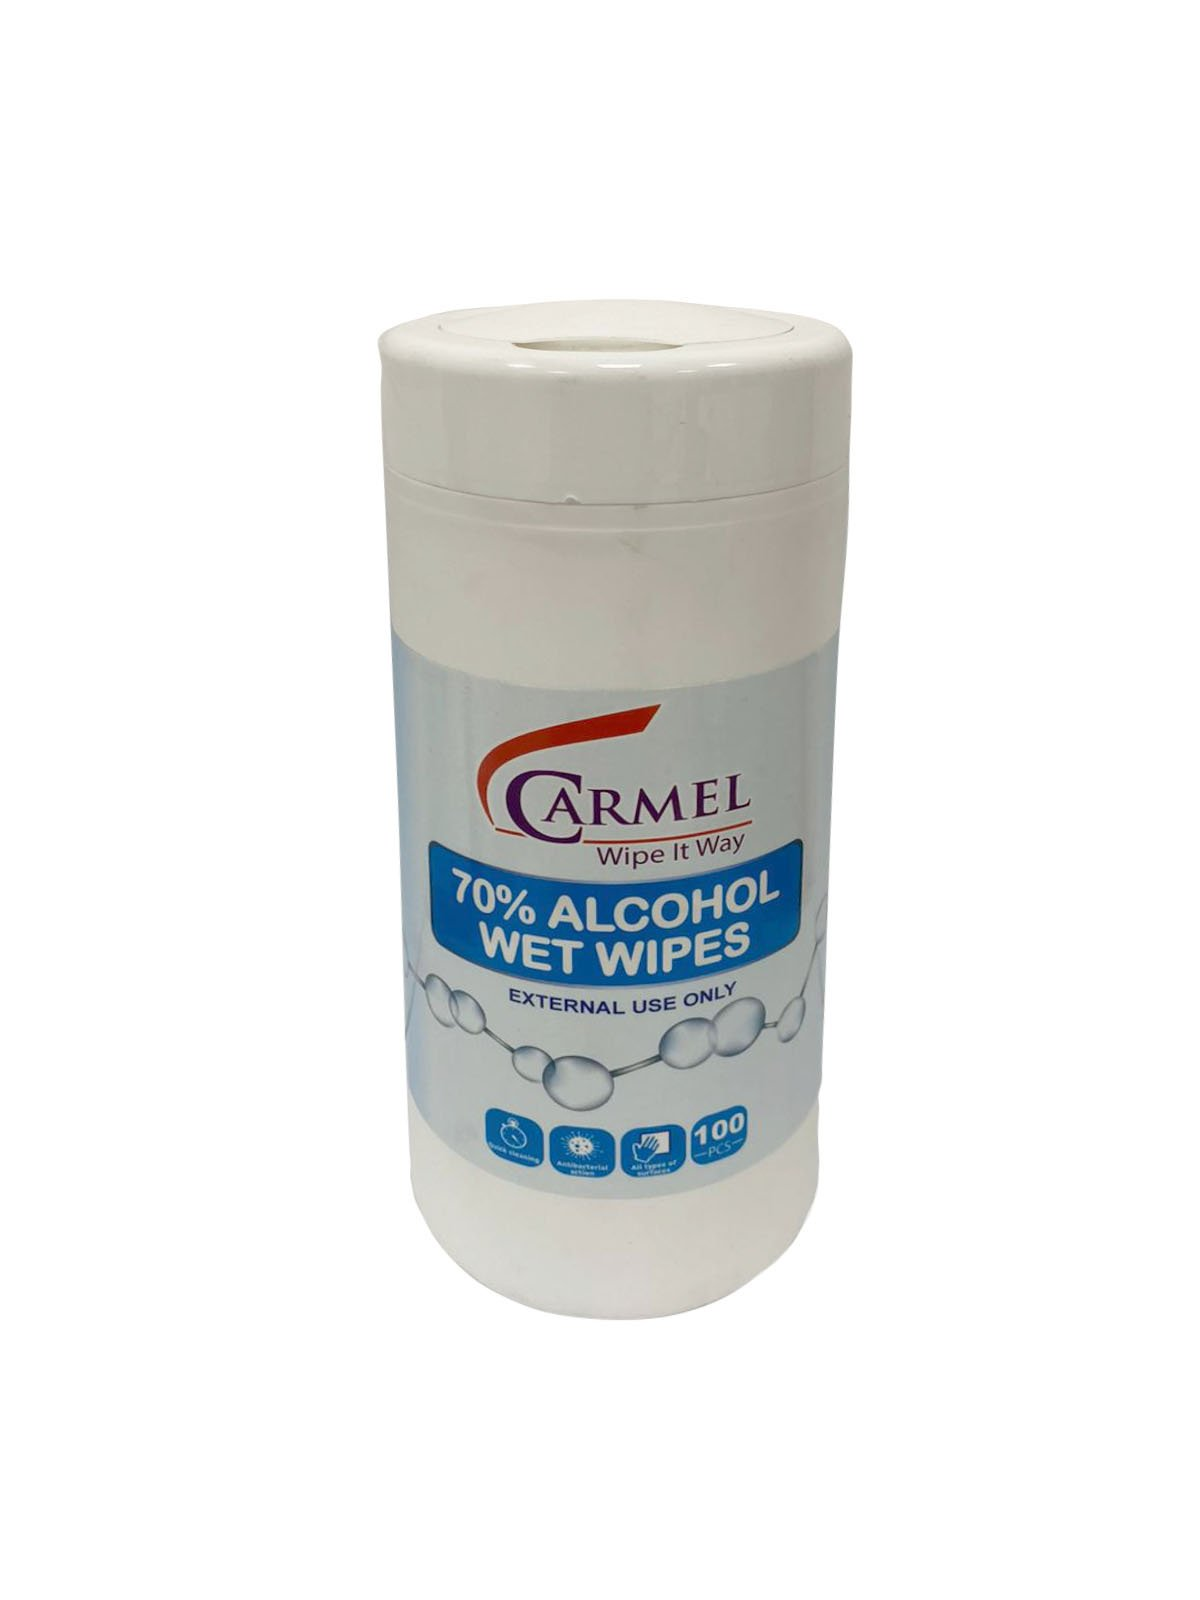 Carmel Disinfecting wipes - 1 canister of 100 - 70% alcohol - CDC recommended - Brooklyn Equipment